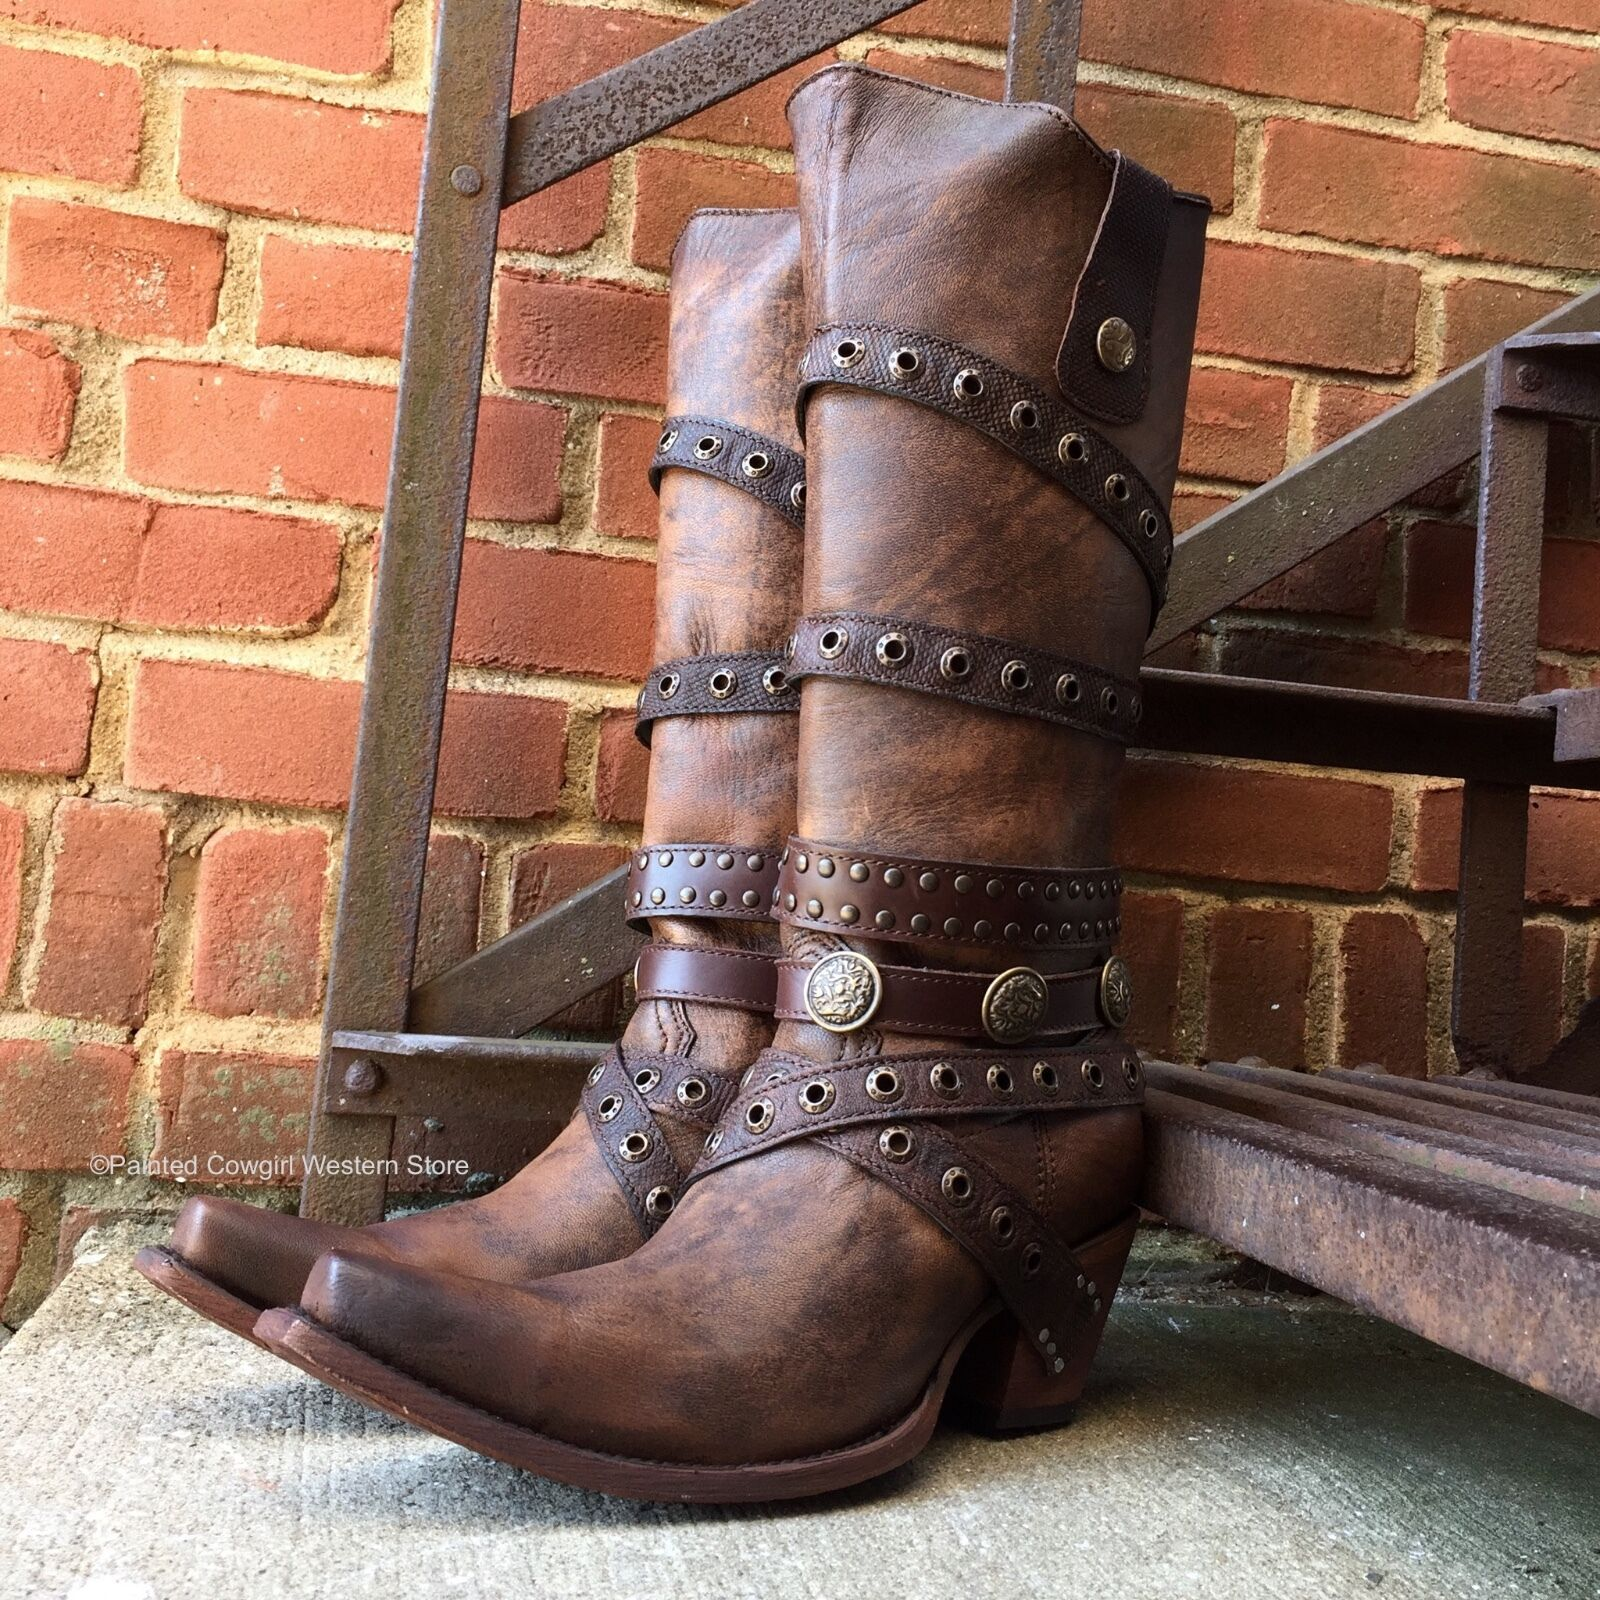 CORRAL WOMEN'S EDGY BROWN LEATHER BOOTS WITH STRAPS C2970  -  LAST PAIRS SALE